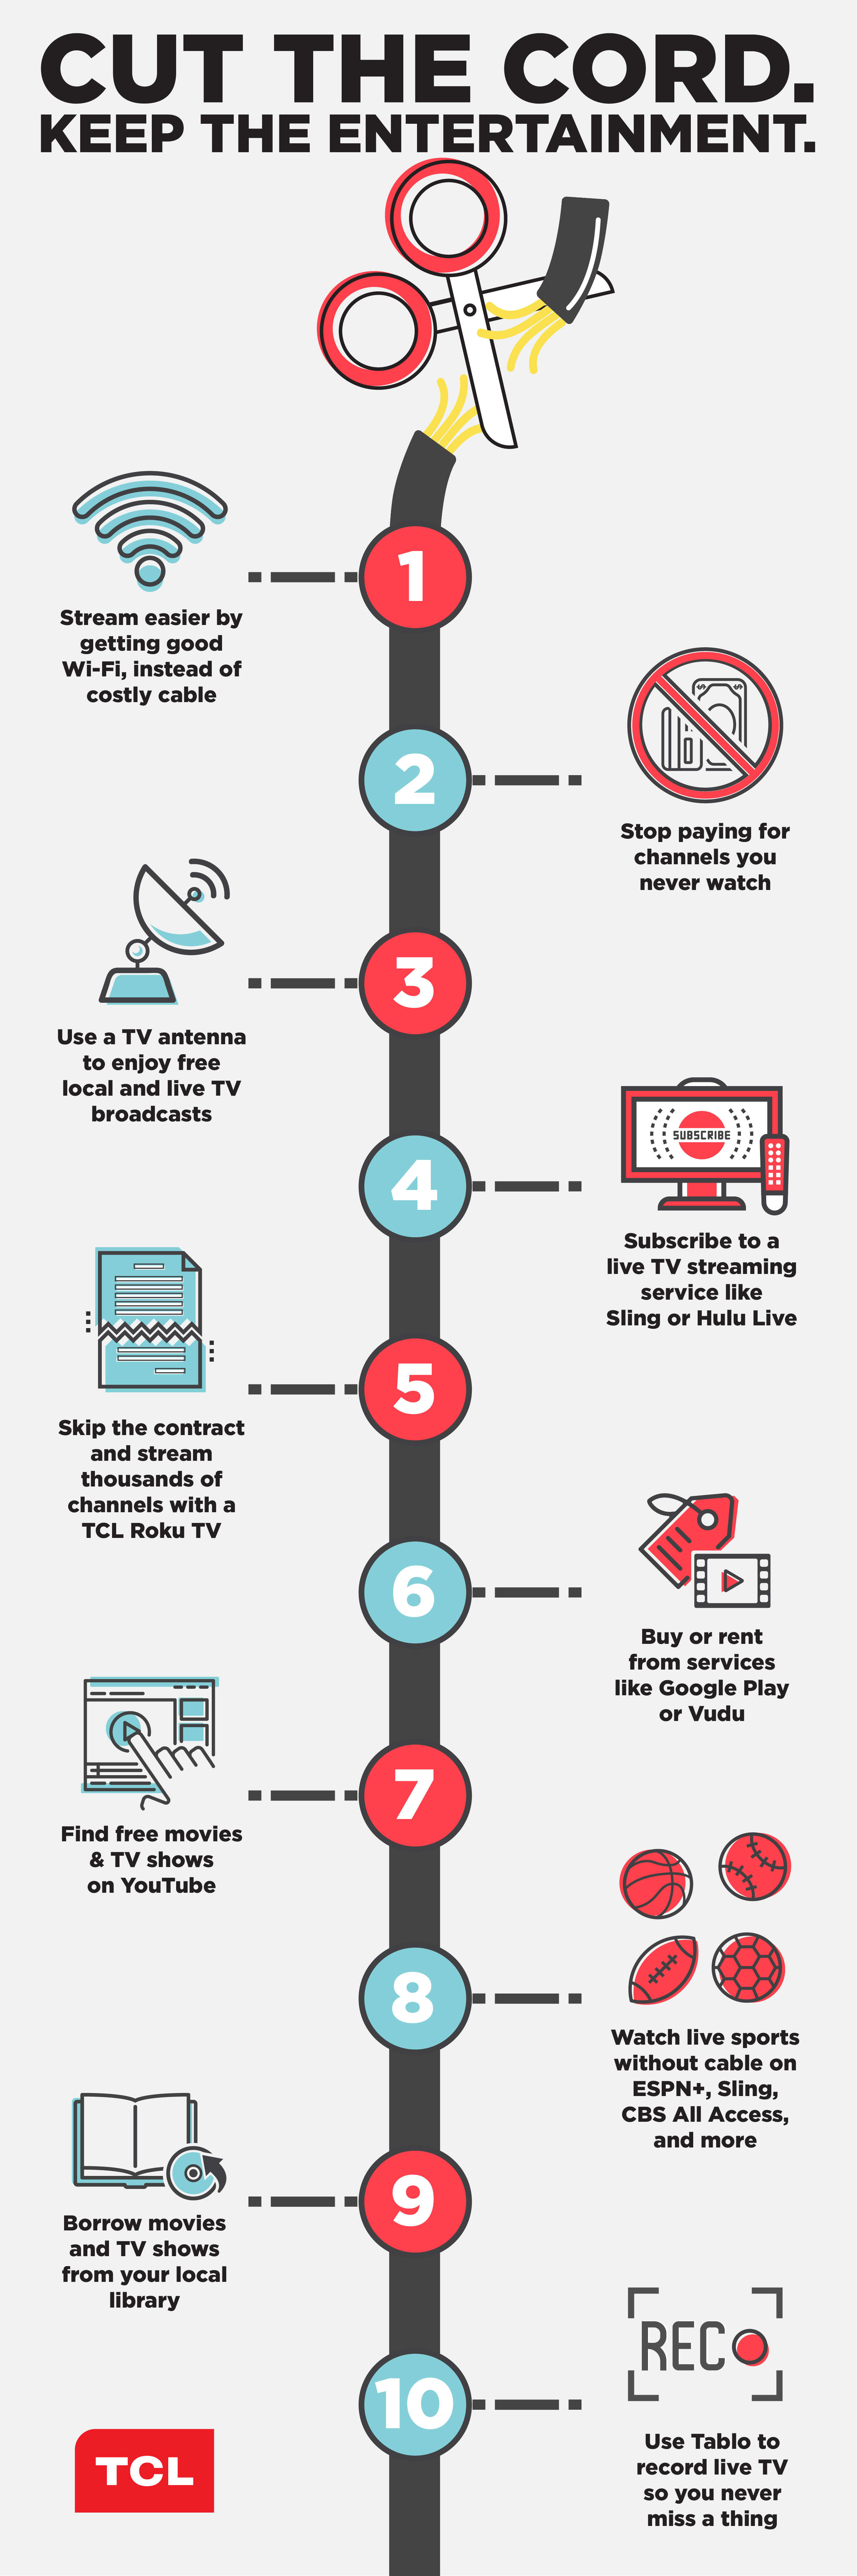 Cut the Cord Infographic